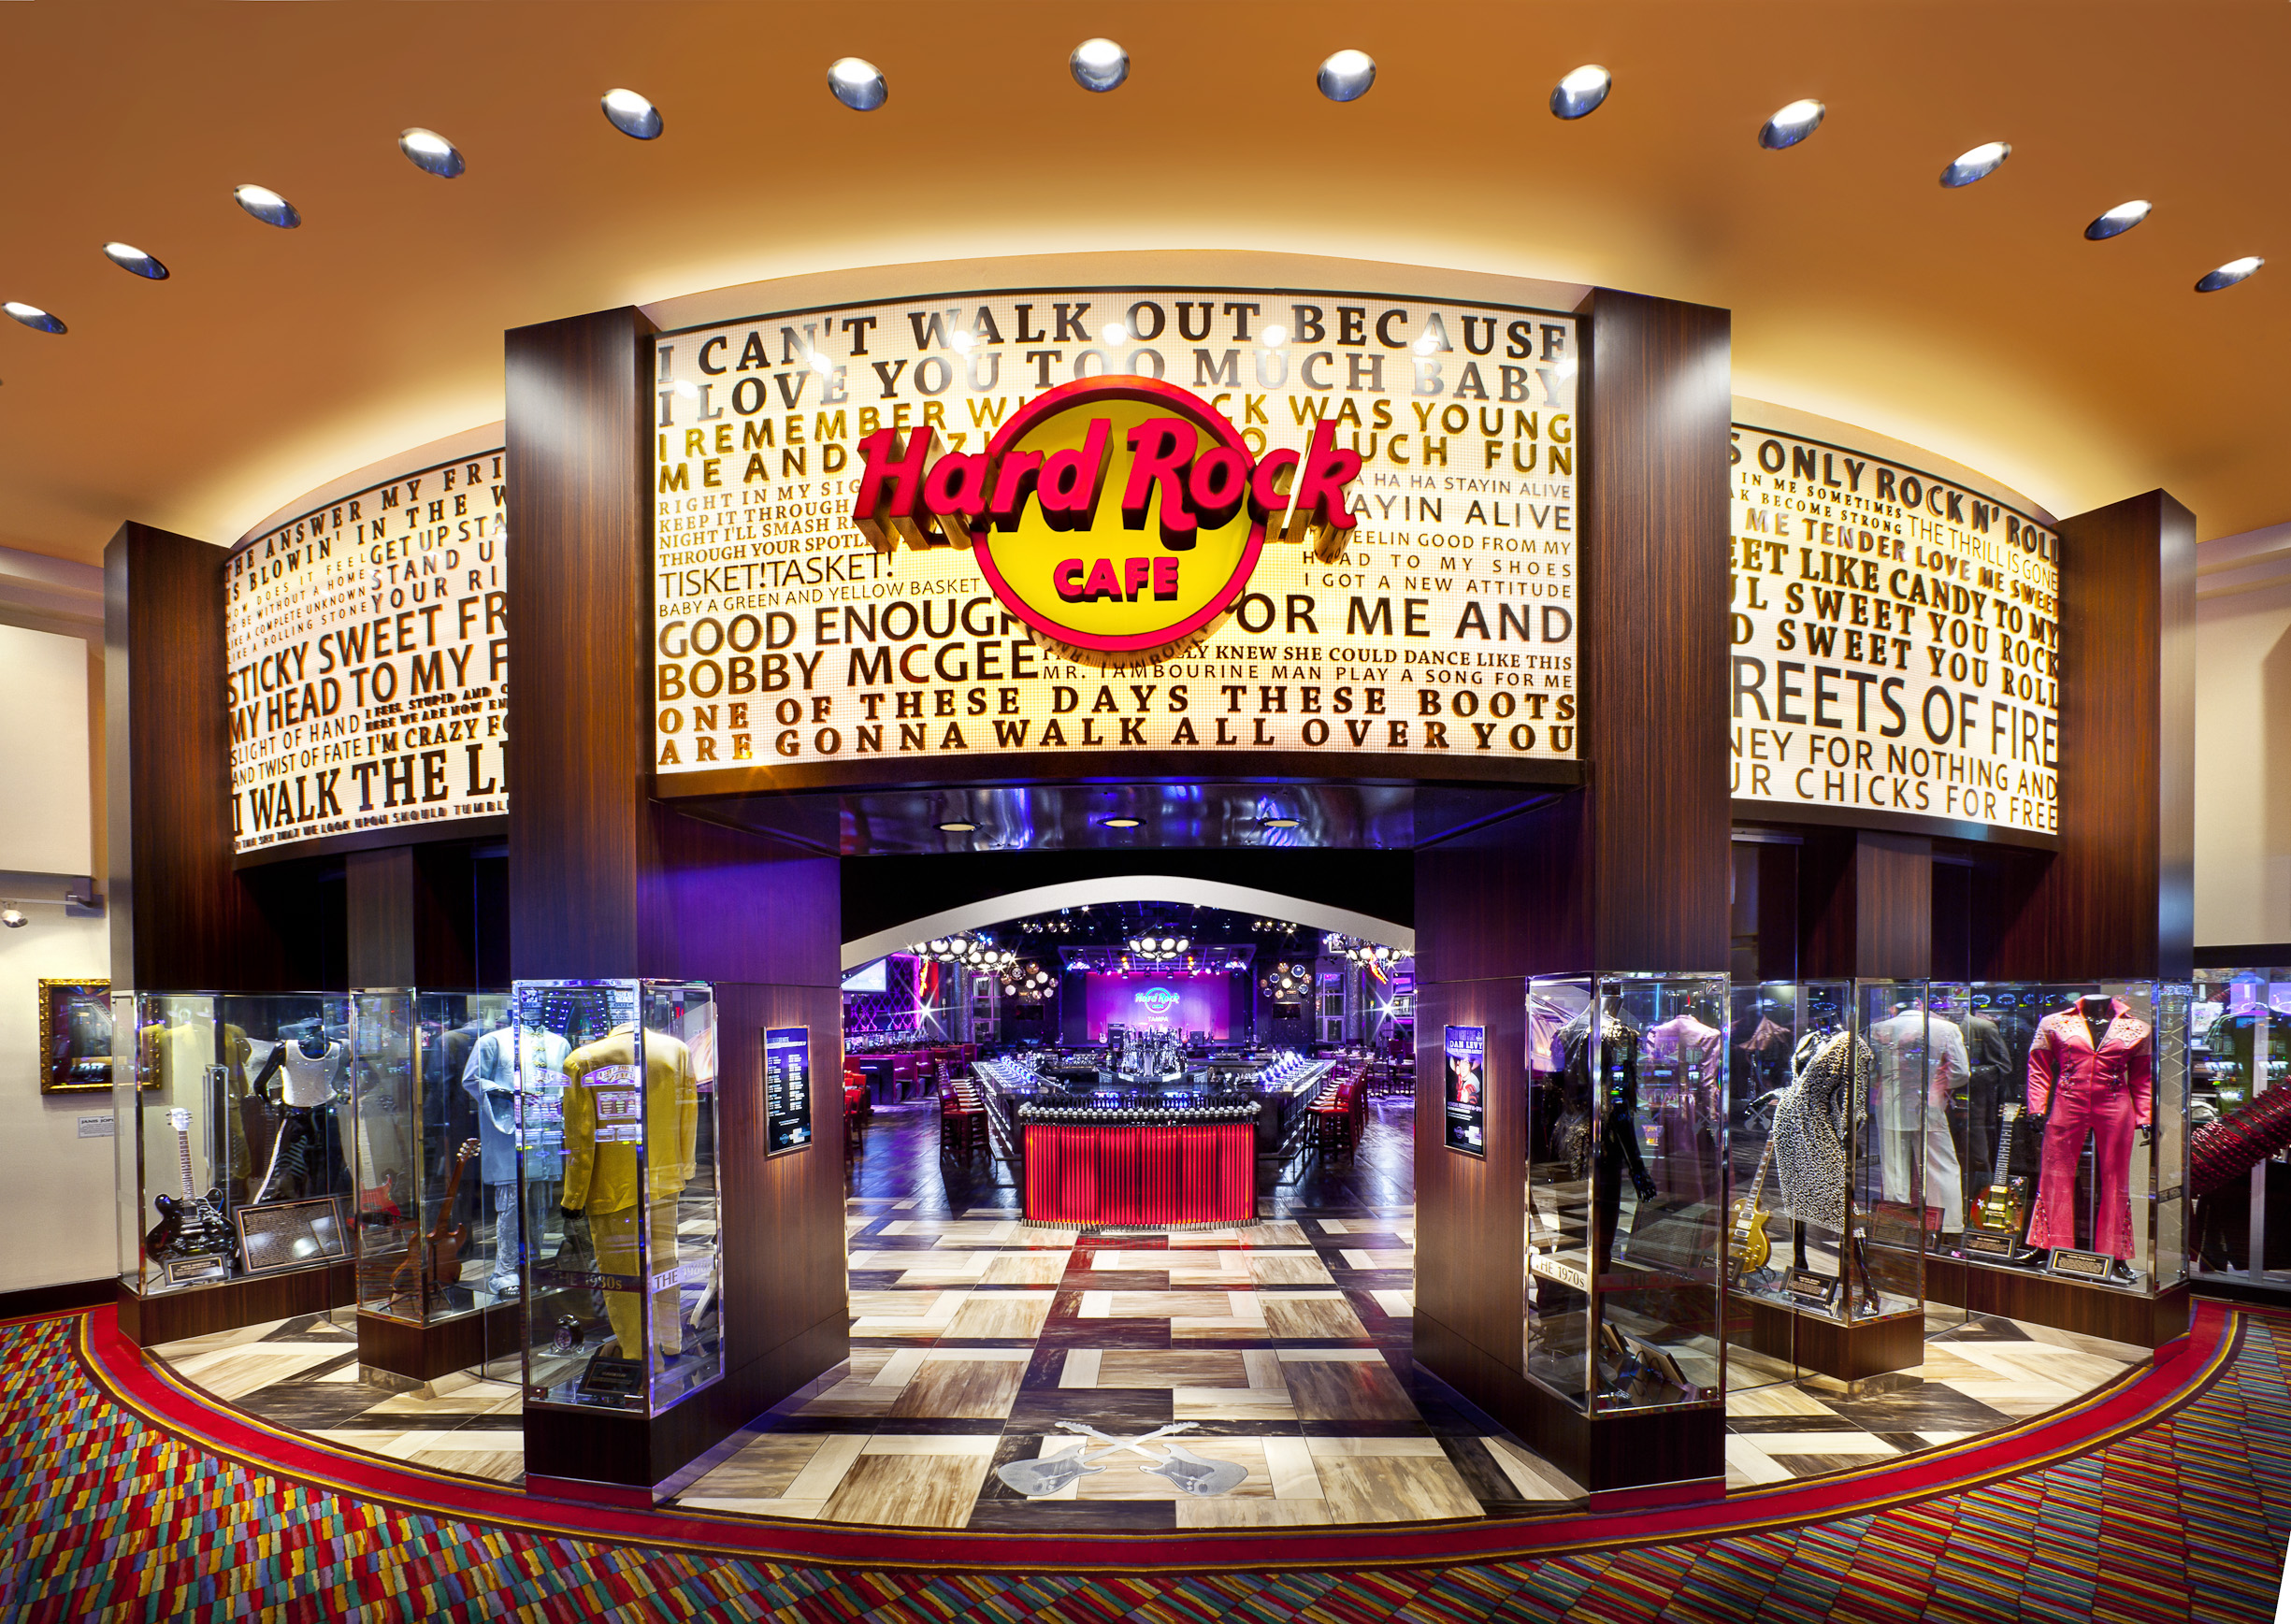 Das seminole hard rock cafe casino-tampa